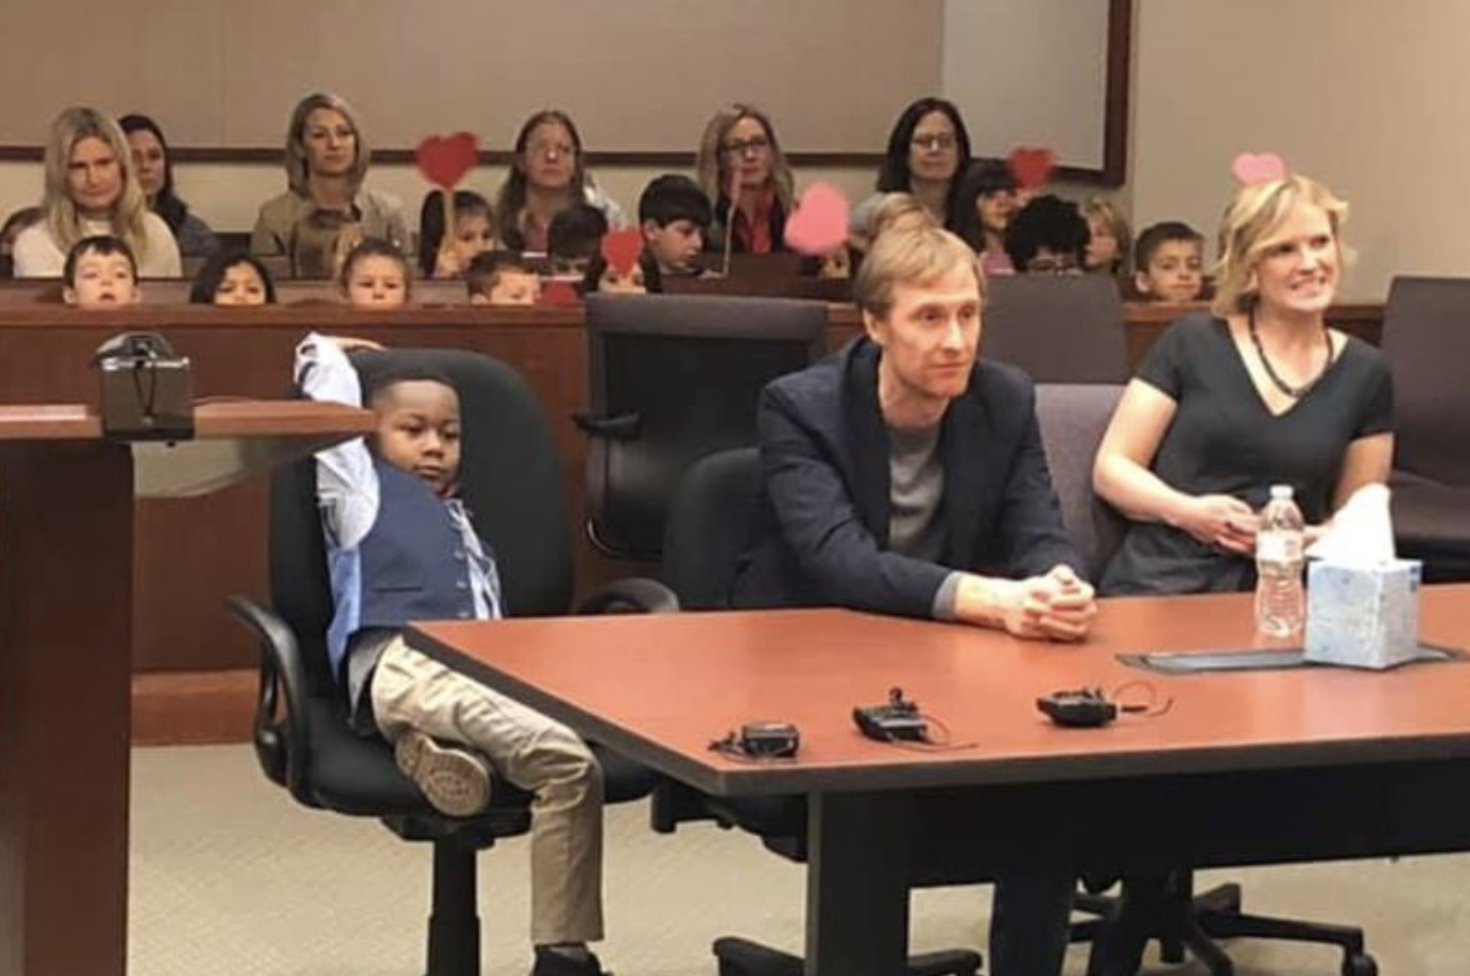 Watch This Heartwarming Video of an Entire Kindergarten Class Supporting Their Friend's Adoption